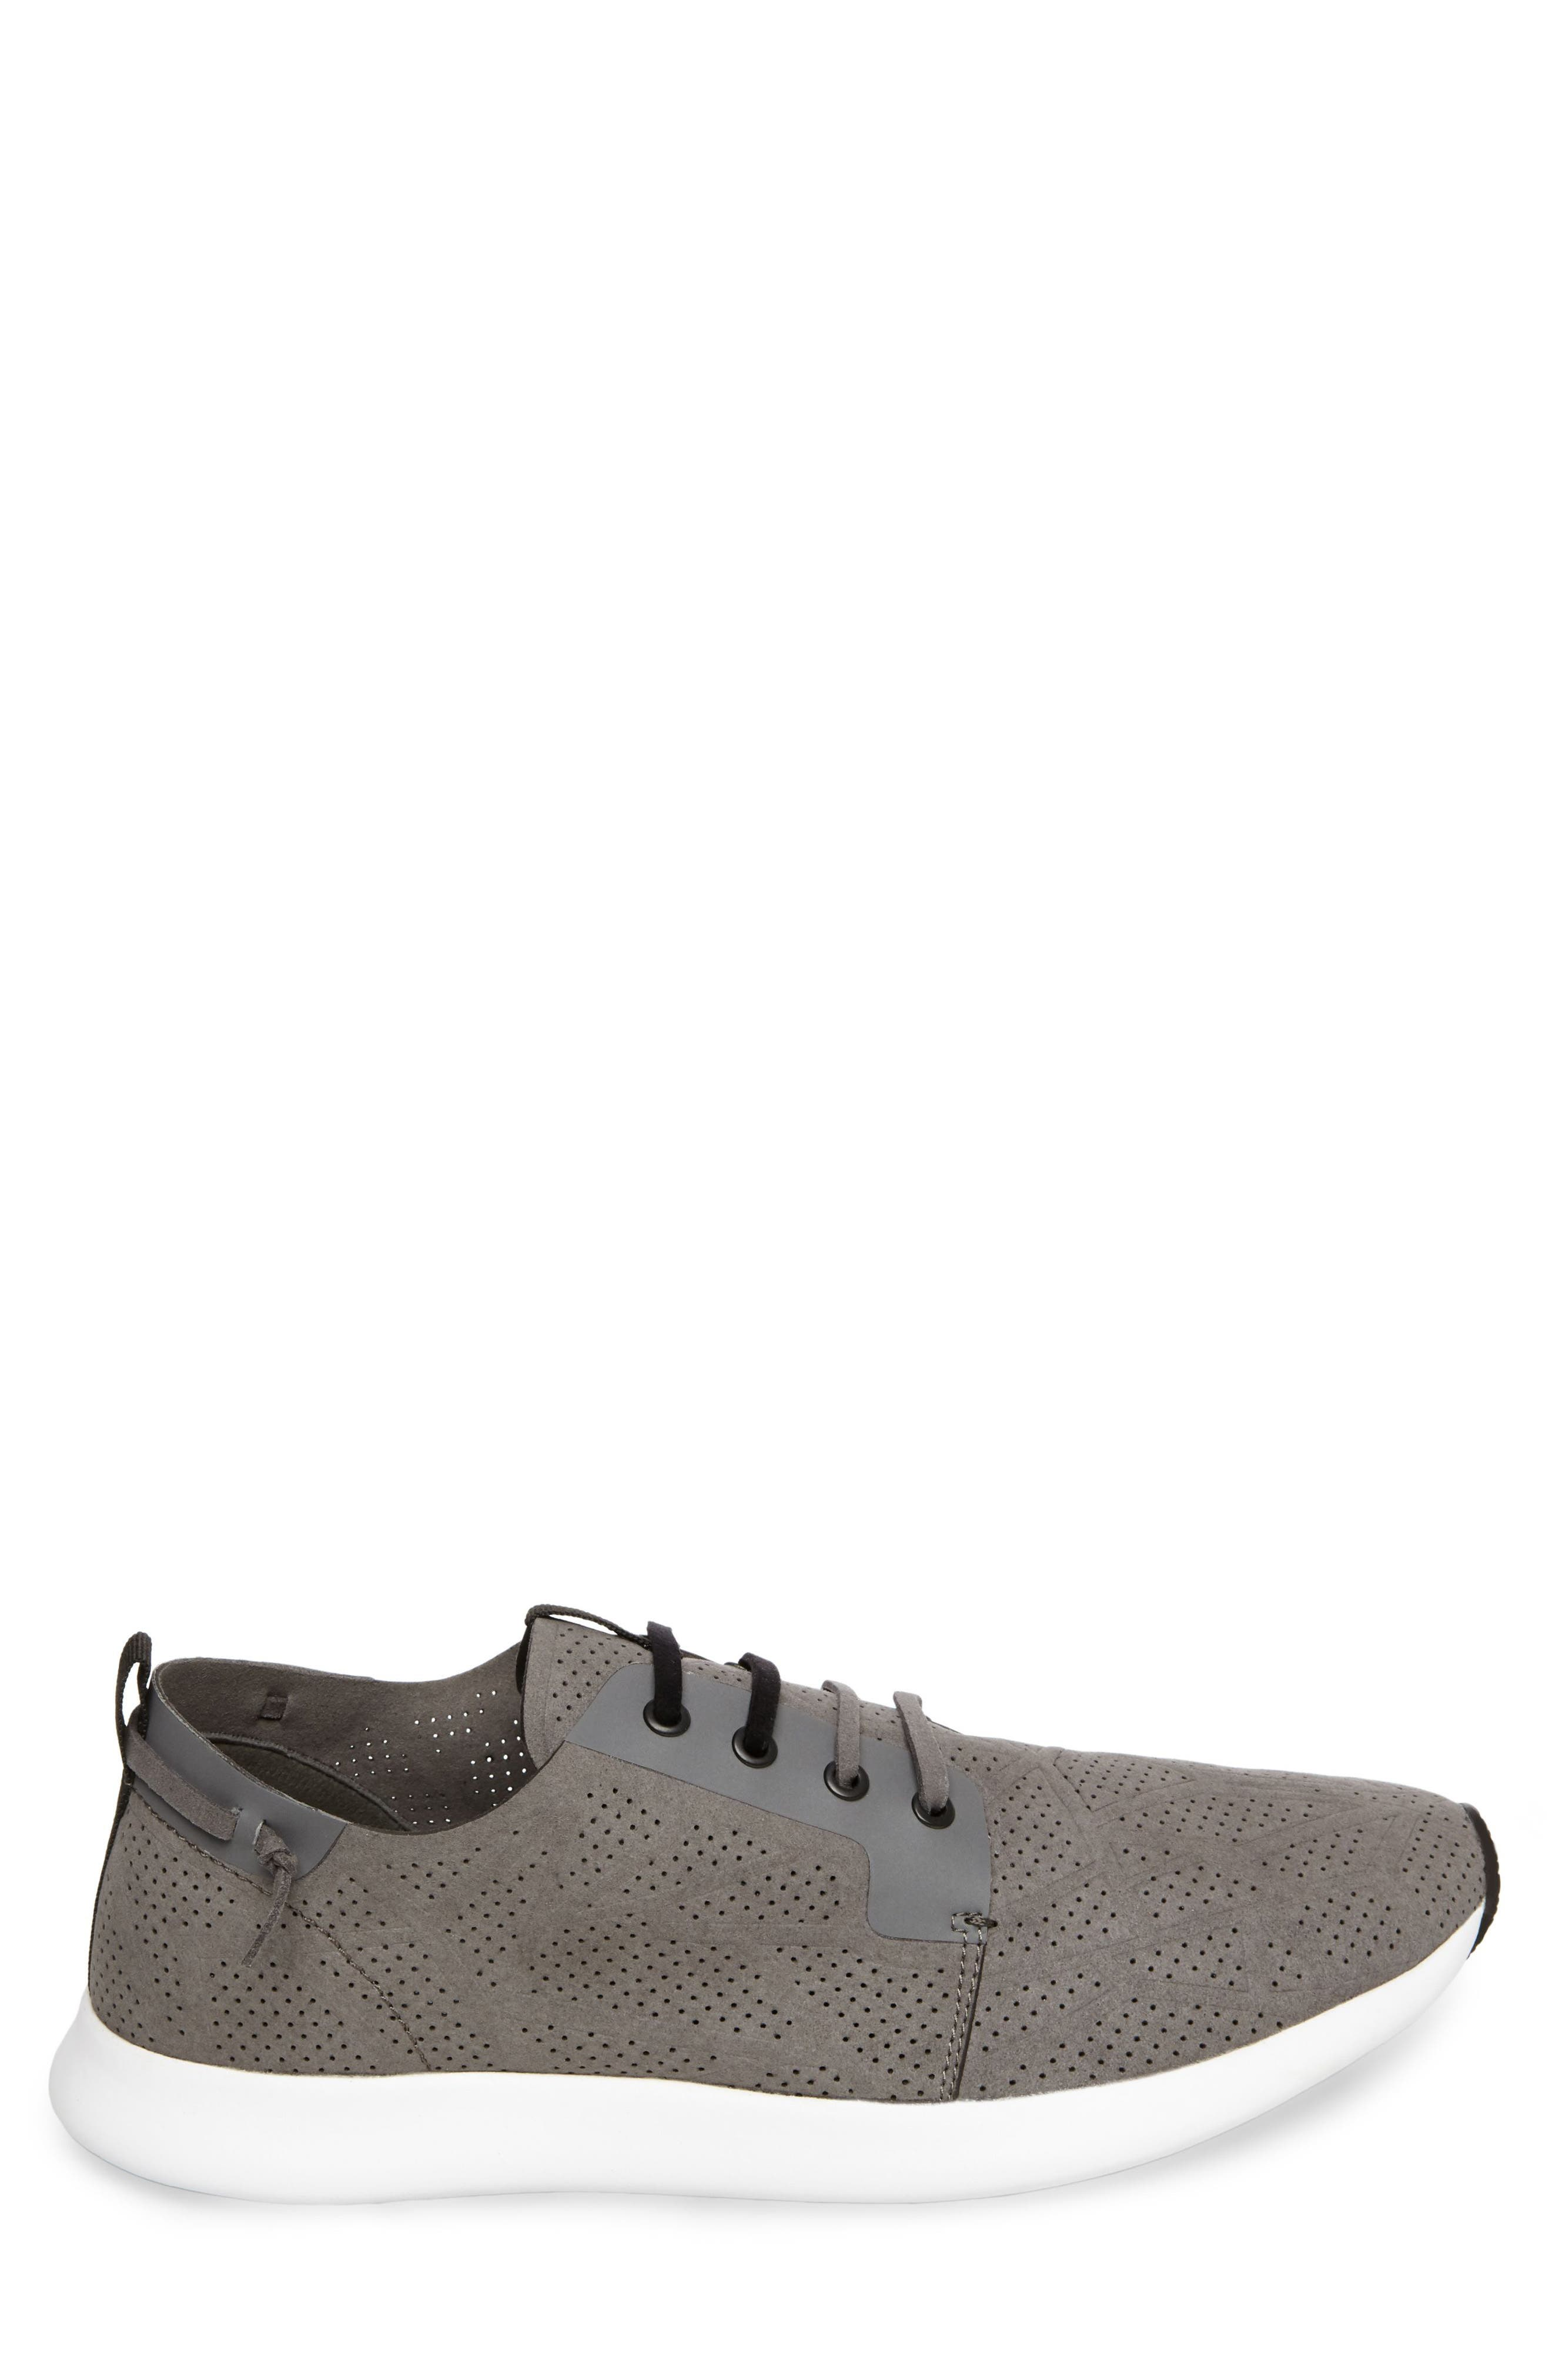 Batali Perforated Sneaker,                             Alternate thumbnail 3, color,                             055